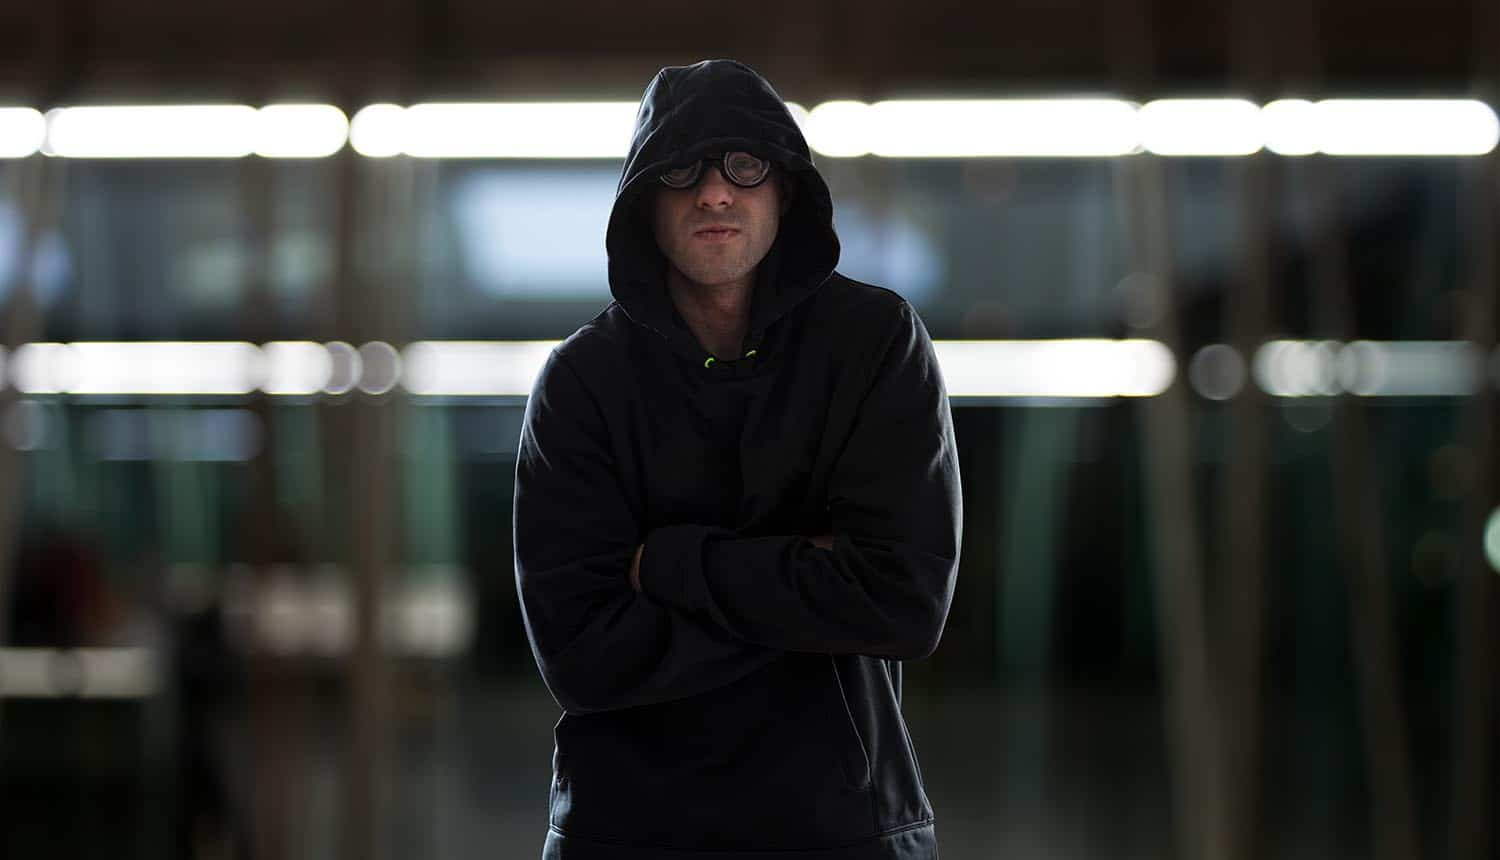 Hacker looking smug and standing with arms crossed showing the need for faster cyber response